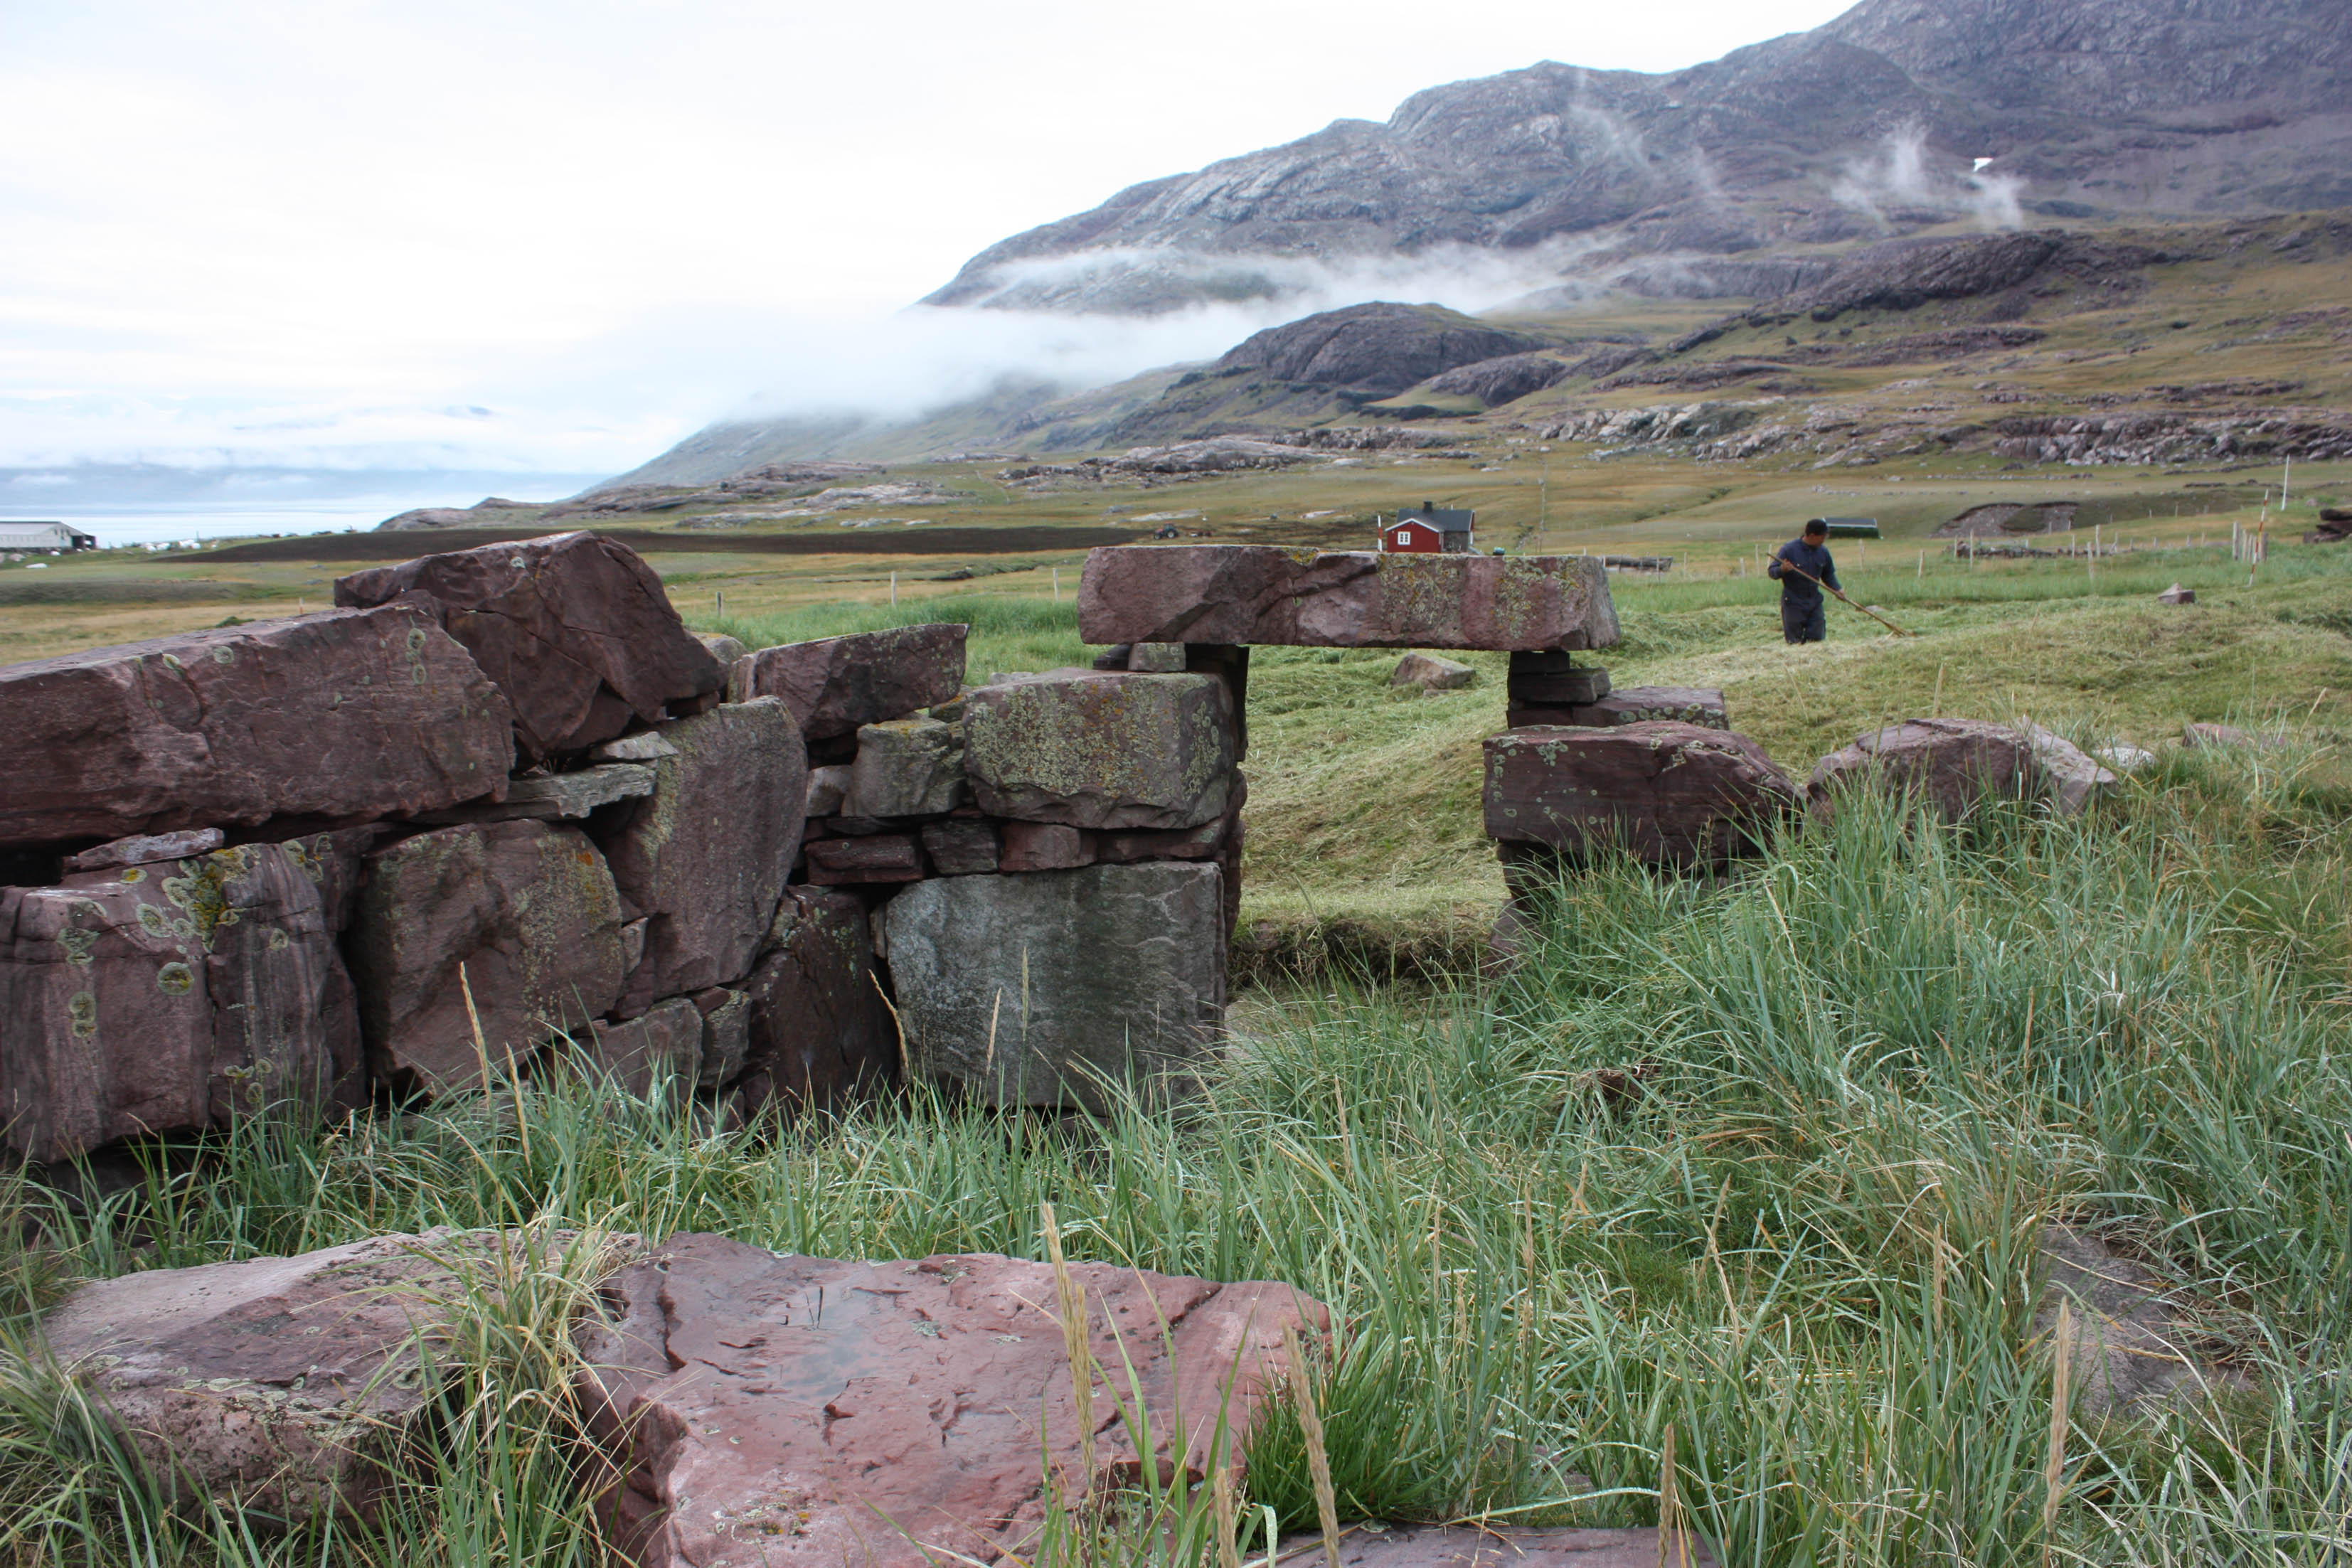 Vikings from Norway, Iceland and Denmark began to colonize Greenland ...